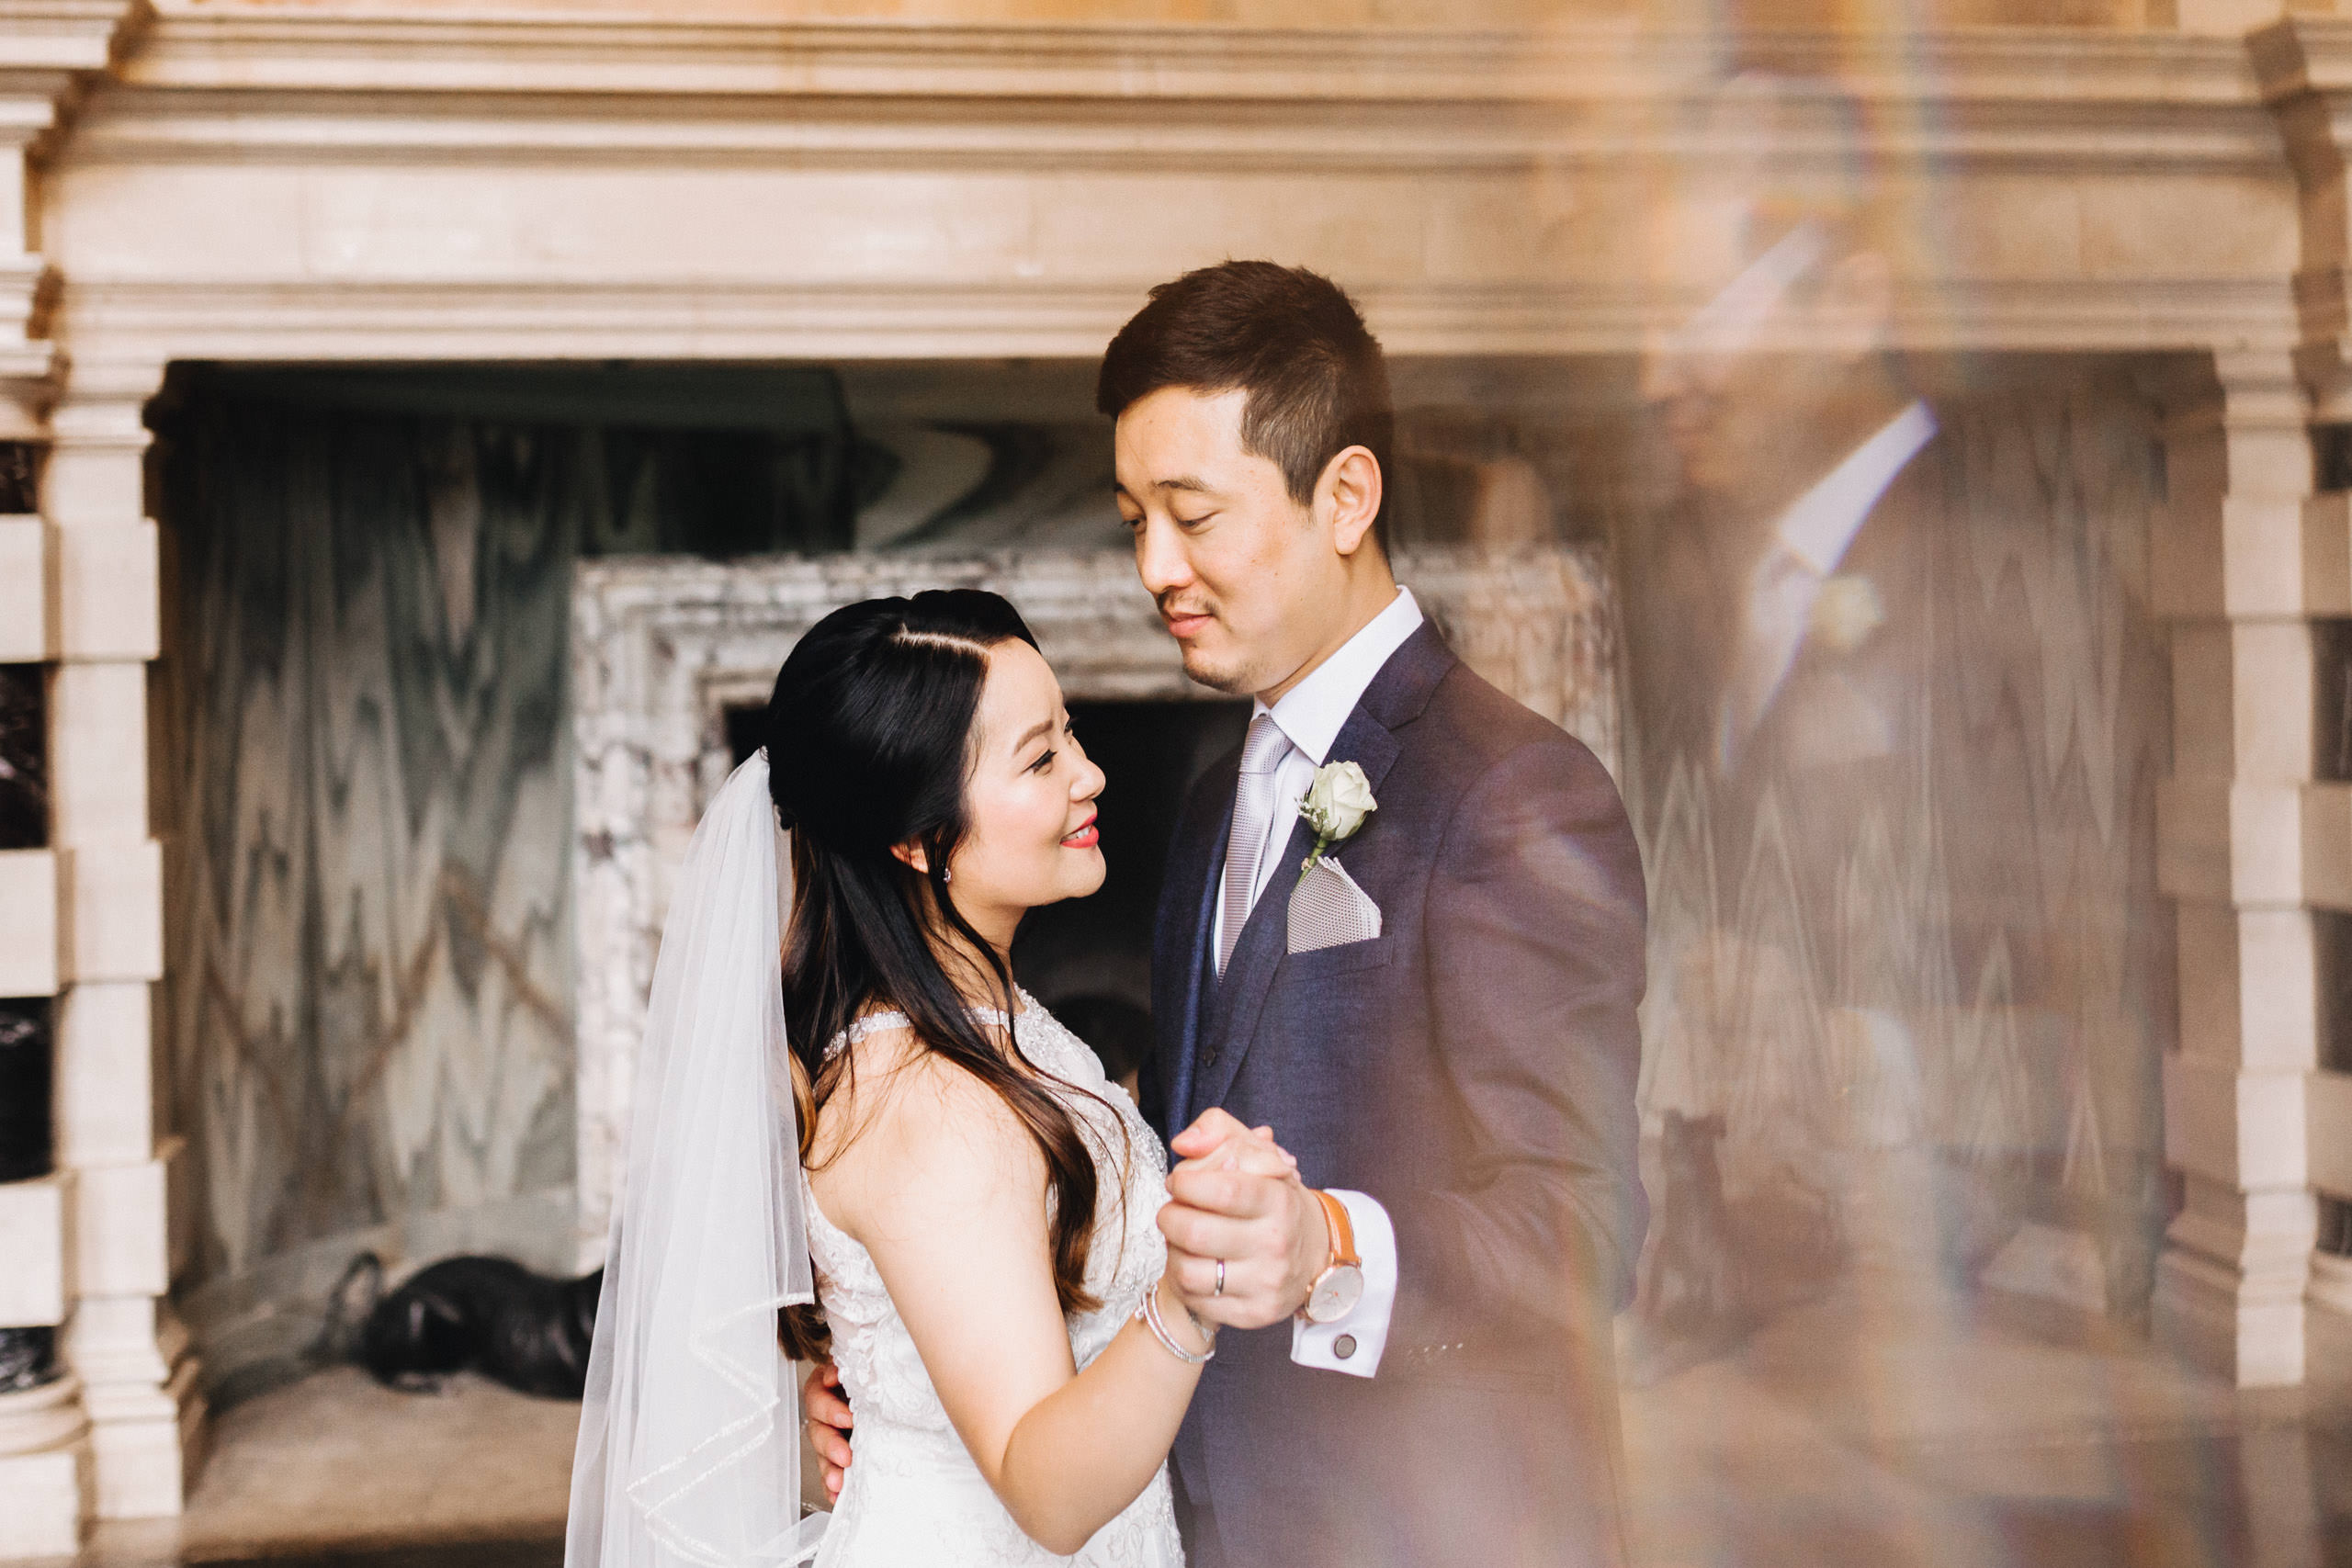 Addington Palace Nepali wedding